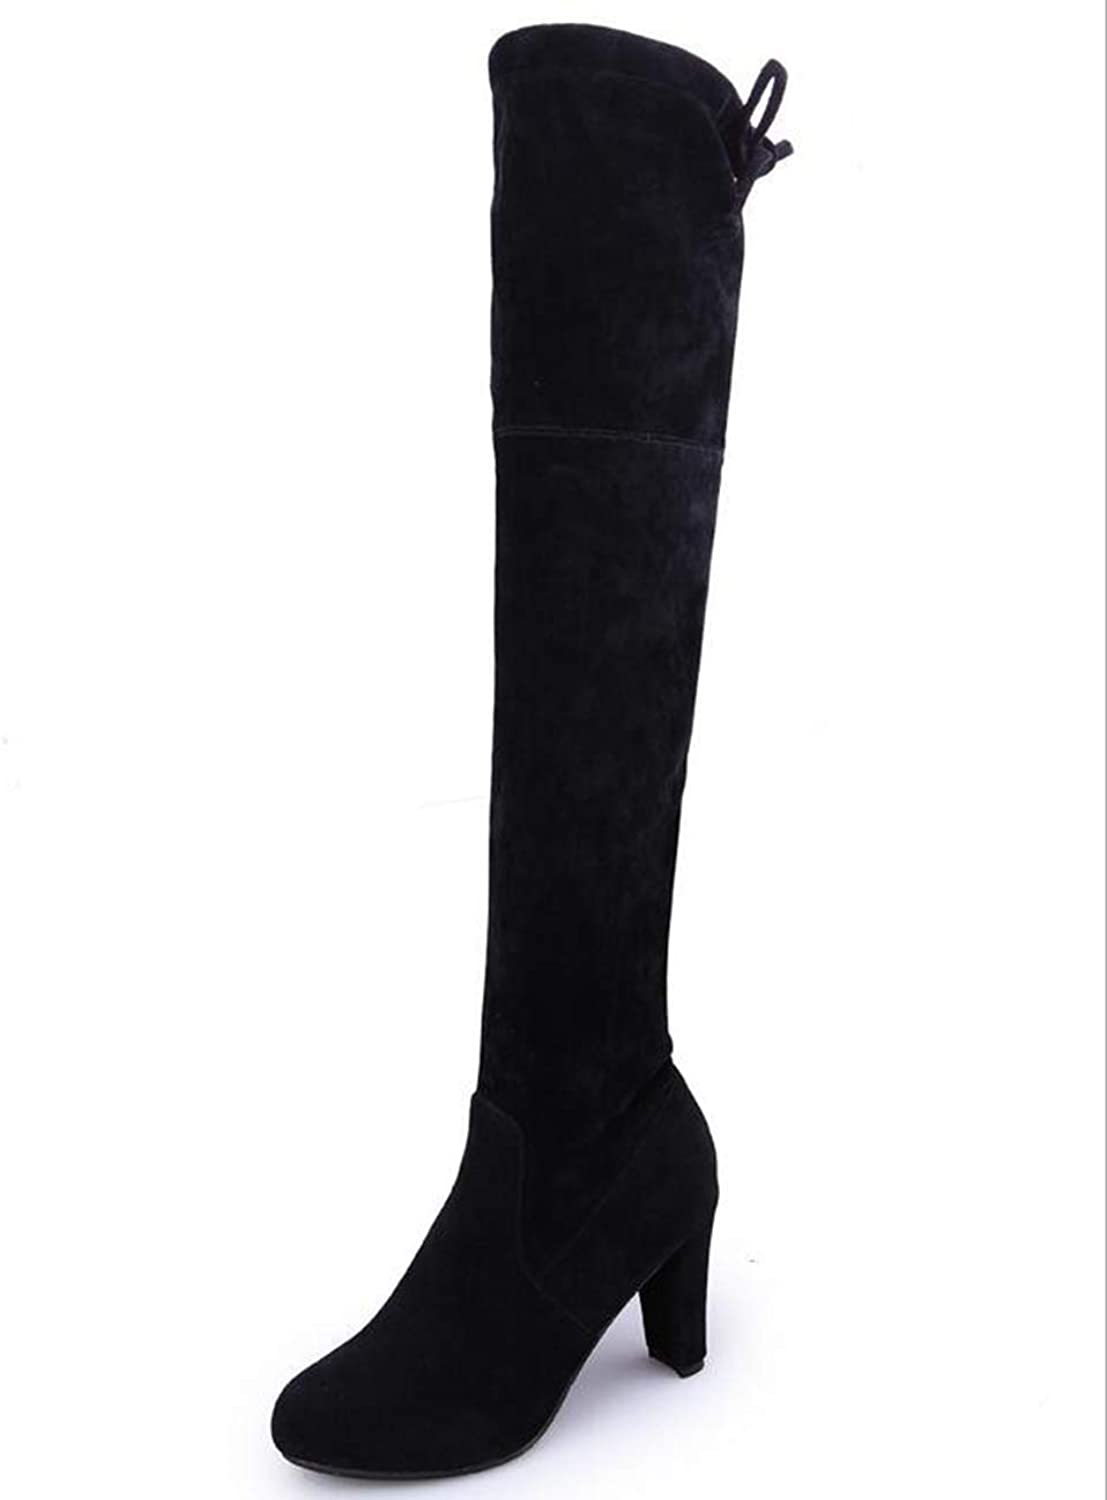 Hoxekle Women Over The Knee High Boots Lace-Up Slip On Stretch Fabric Round Toe High Heel Casual Ladies Long Boots